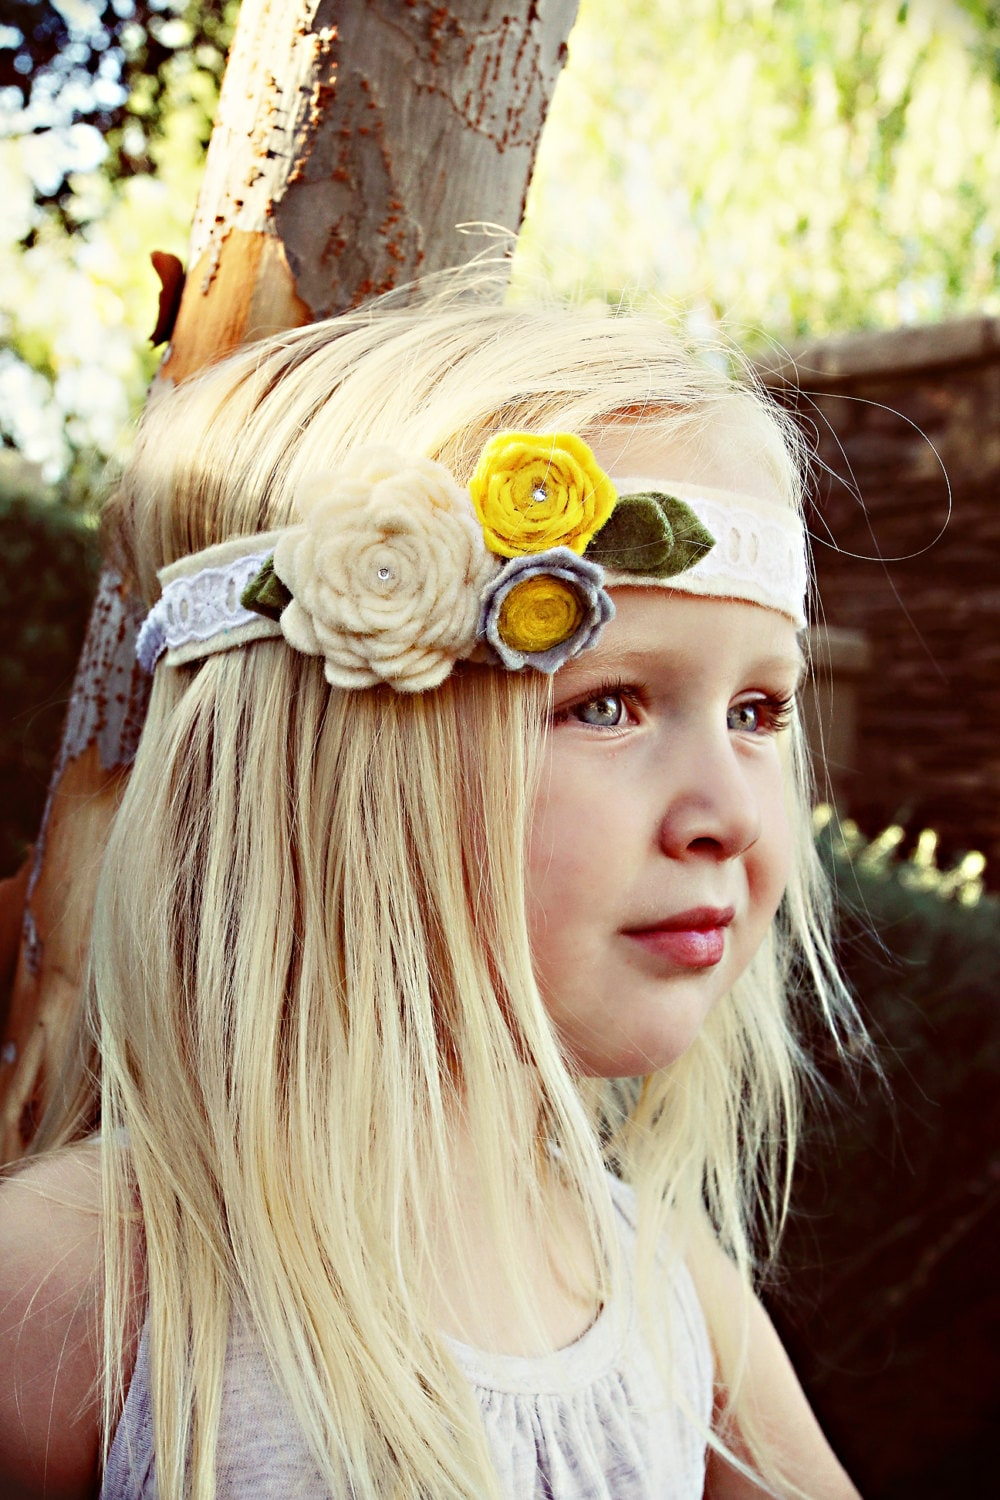 You searched for: flower girl headband! Etsy is the home to thousands of handmade, vintage, and one-of-a-kind products and gifts related to your search. No matter what you're looking for or where you are in the world, our global marketplace of sellers can help you .